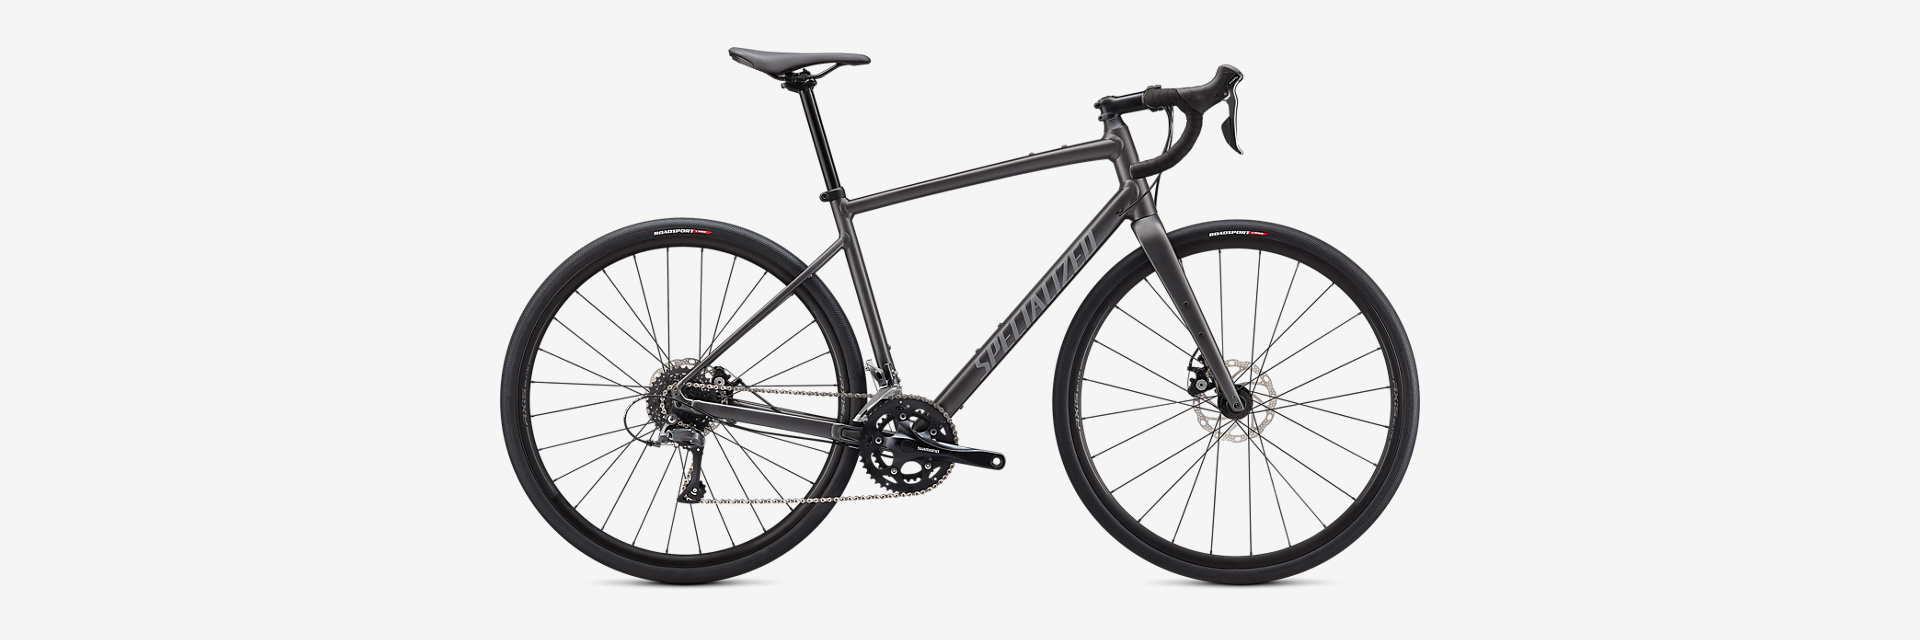 Specialized 21 DIVERGE E5 SMK/CLGRY/CHRM 52